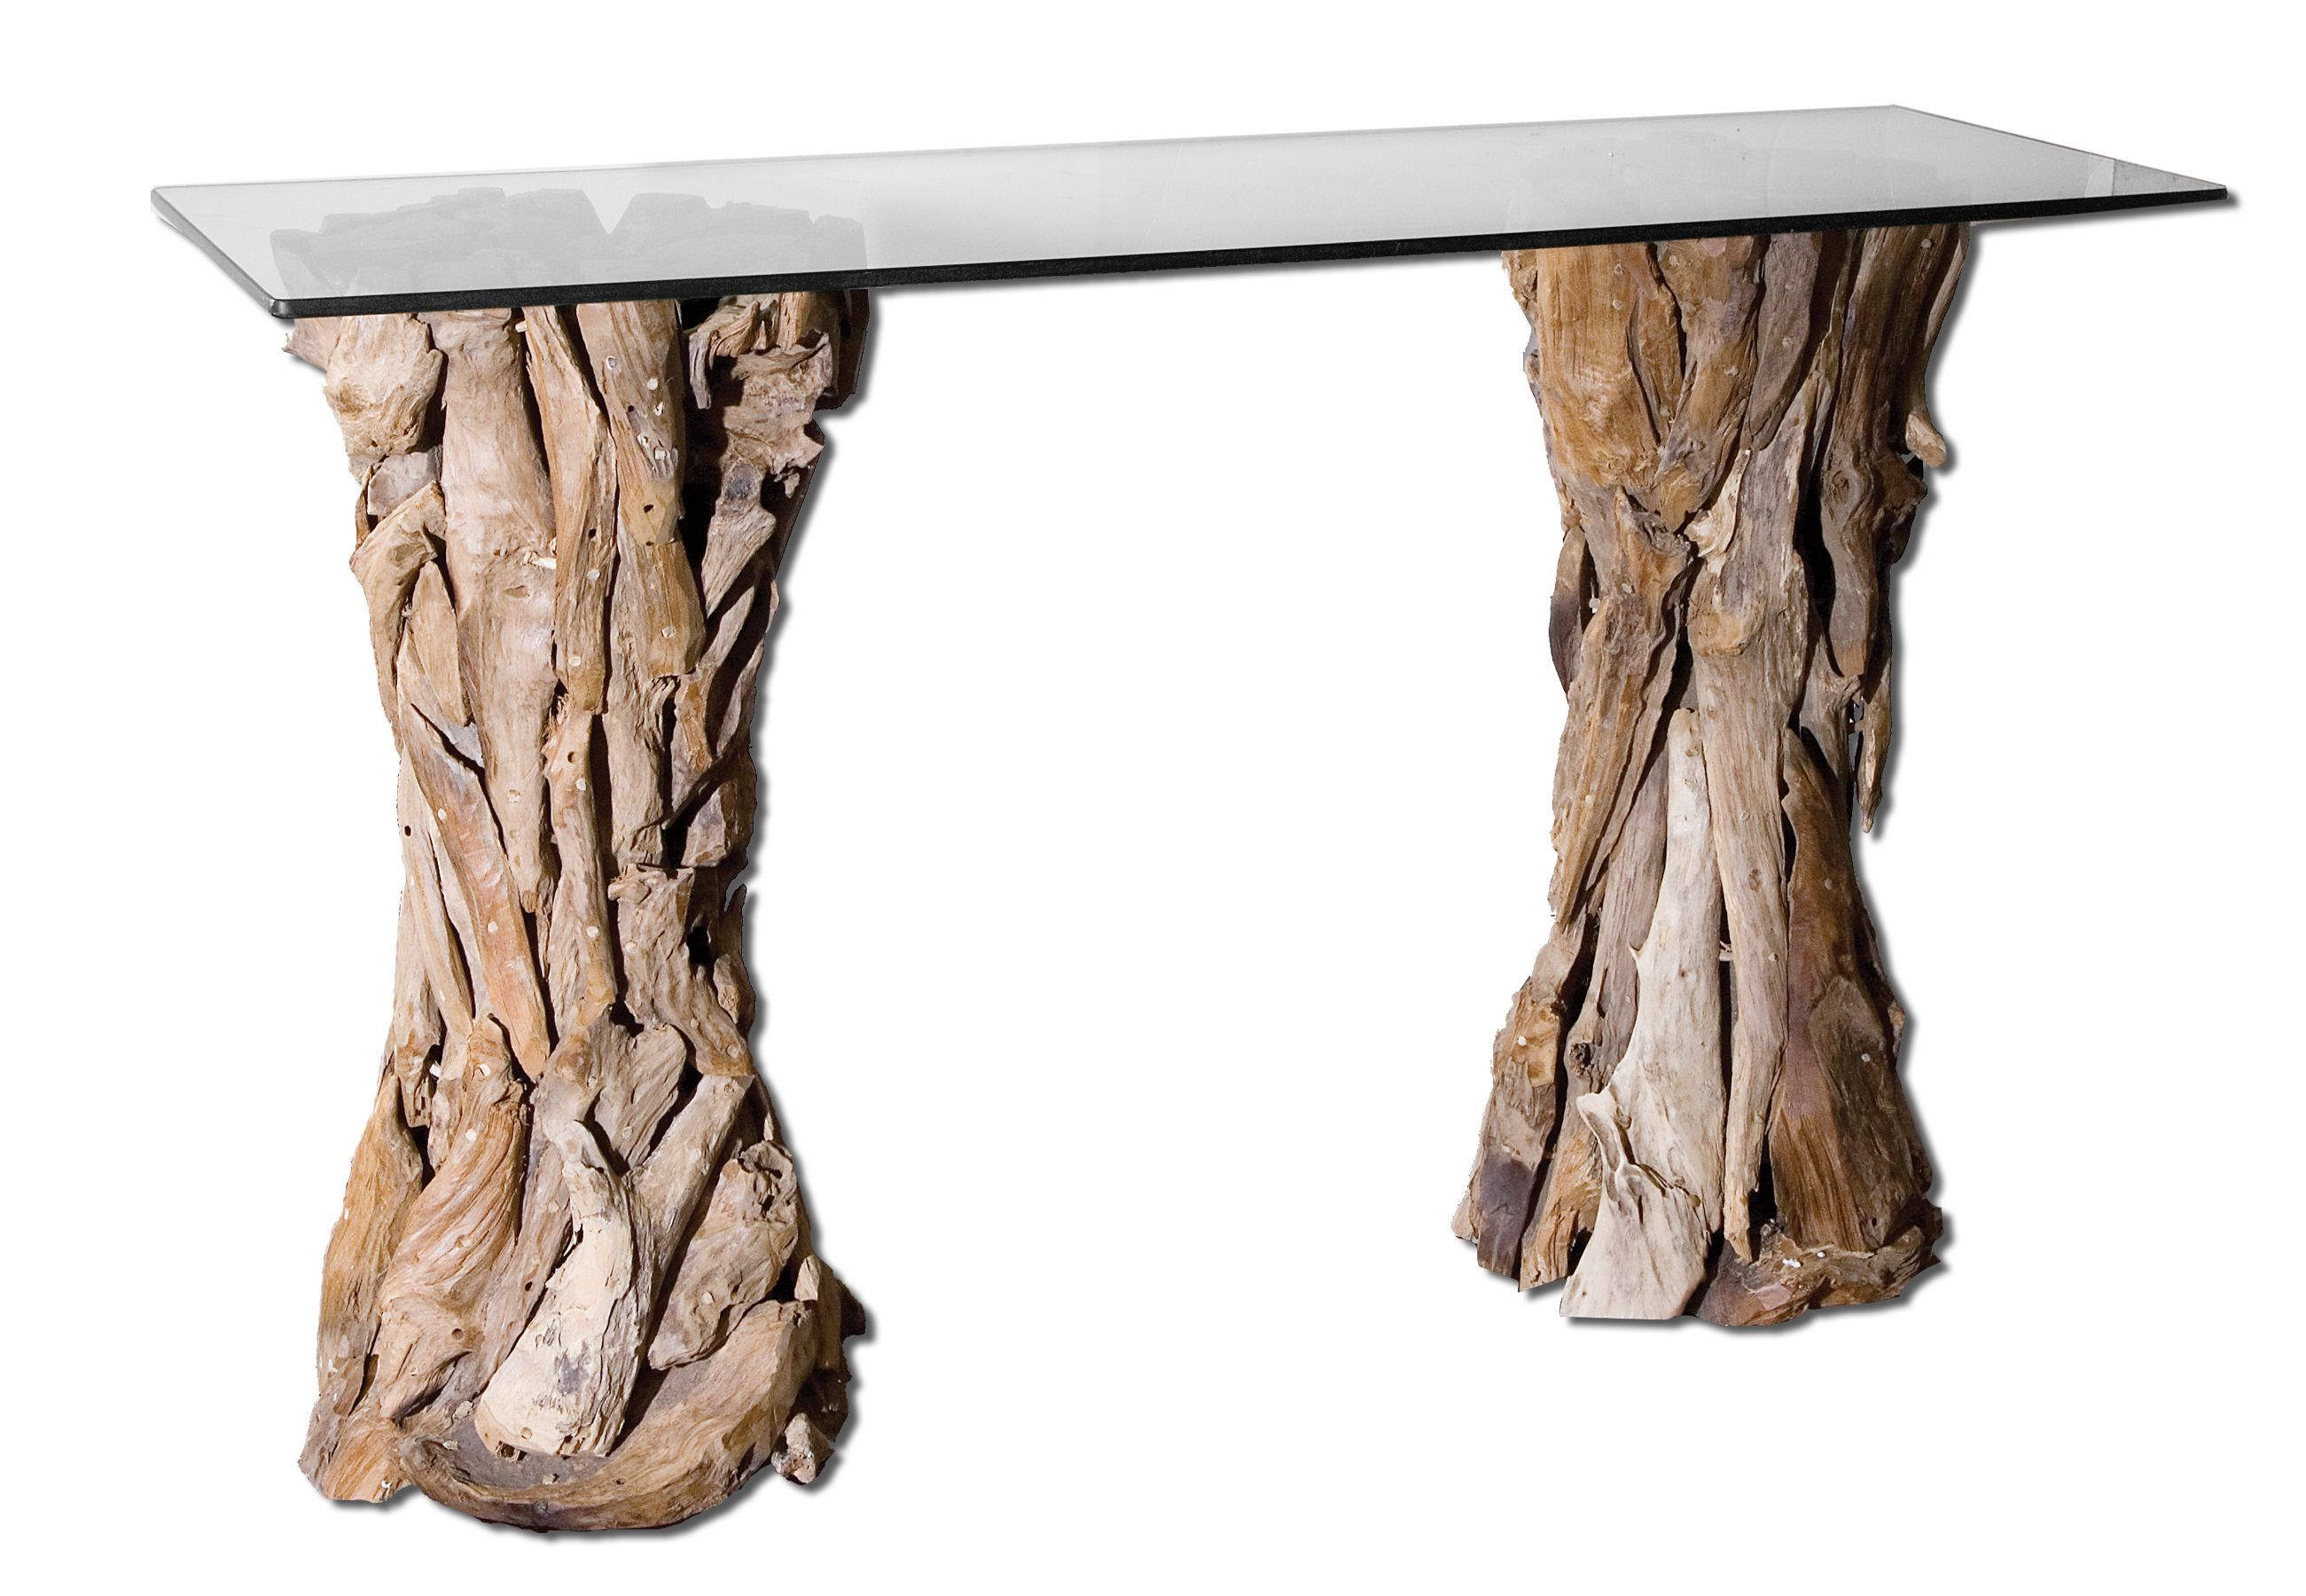 Uttermost teak root glass top console table 25582 uttermost uttermost teak root glass top console table 25582 geotapseo Image collections